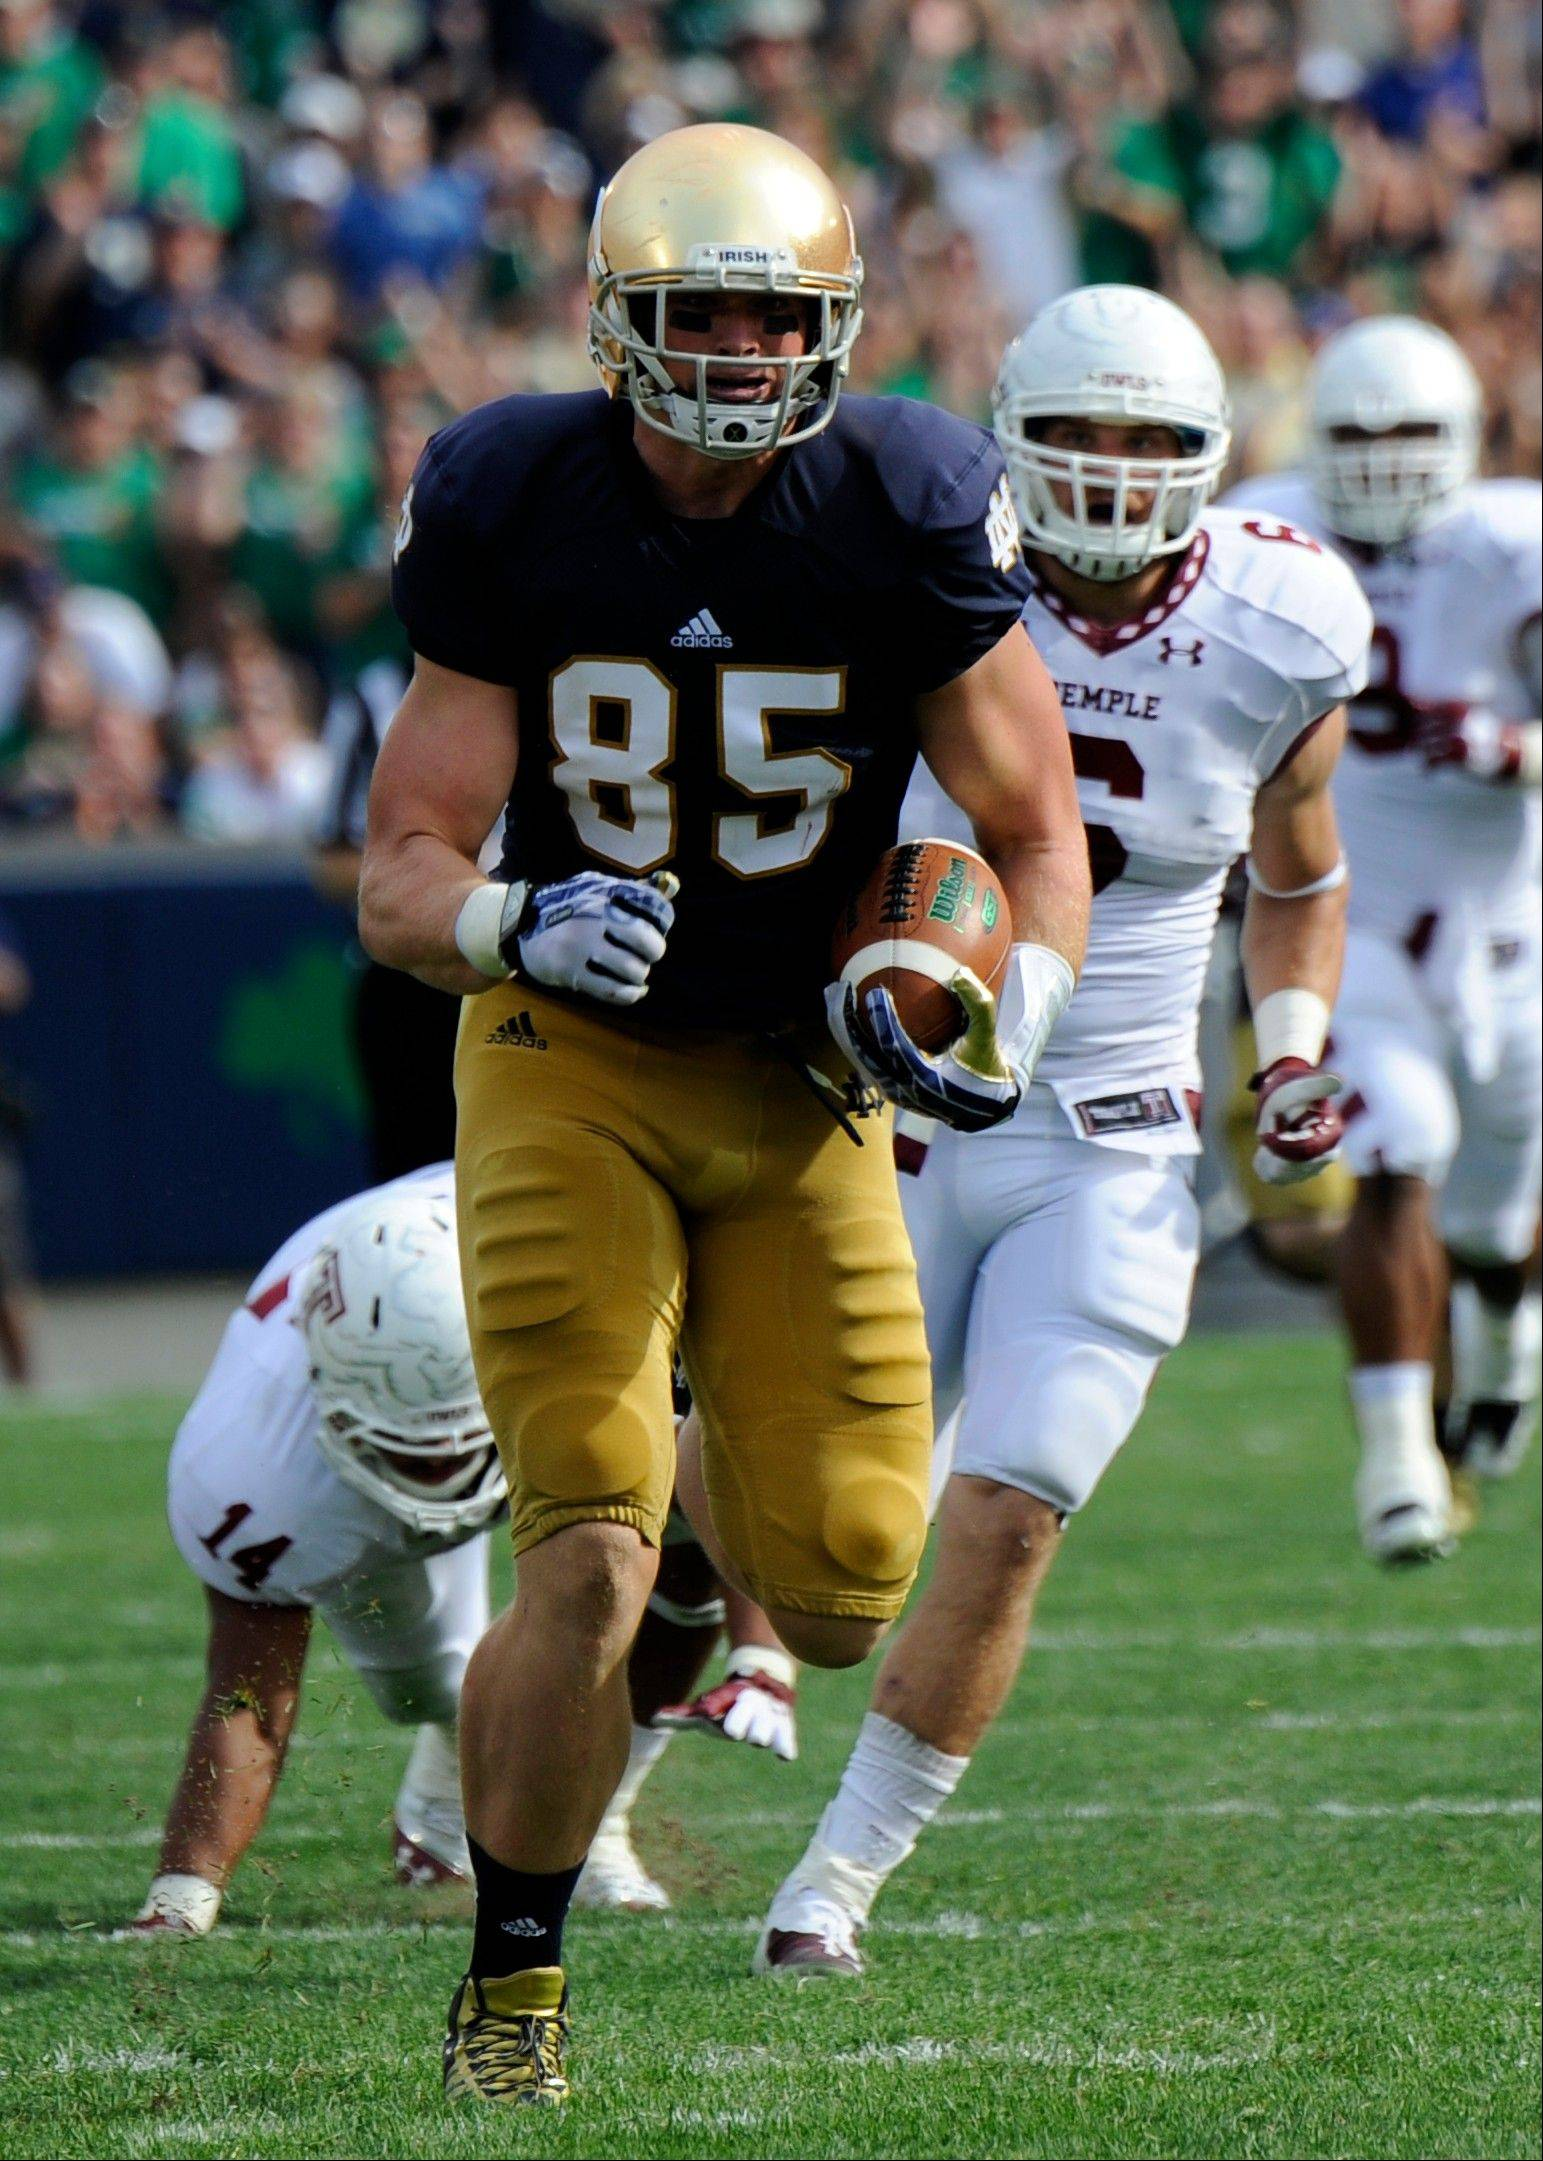 Notre Dame's Troy Niklas started his college career at linebacker but switched to tight end last season.